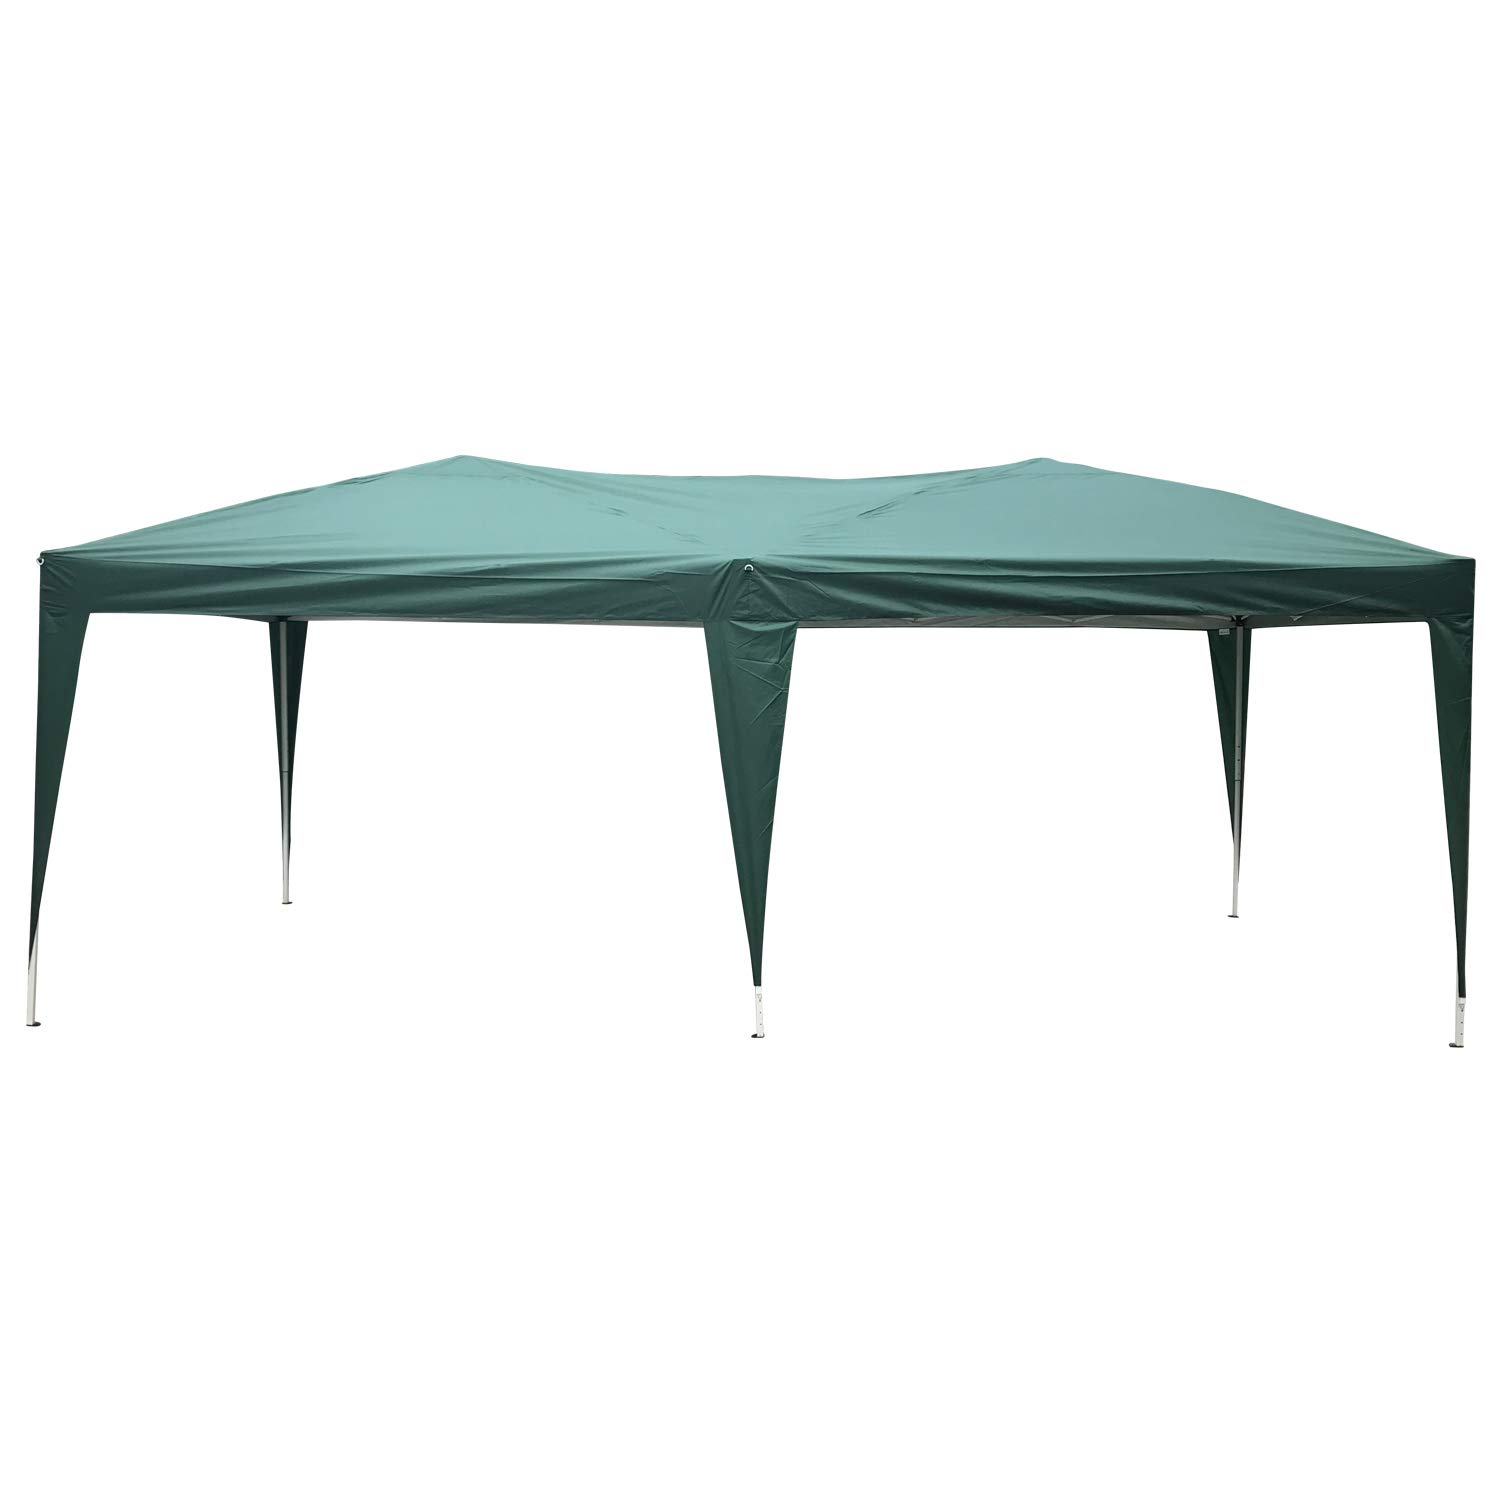 Kinbor Party Tent Portable Pop Up Gazebo Wedding Canopy BBQ Shelter w/Carrying Bag Green